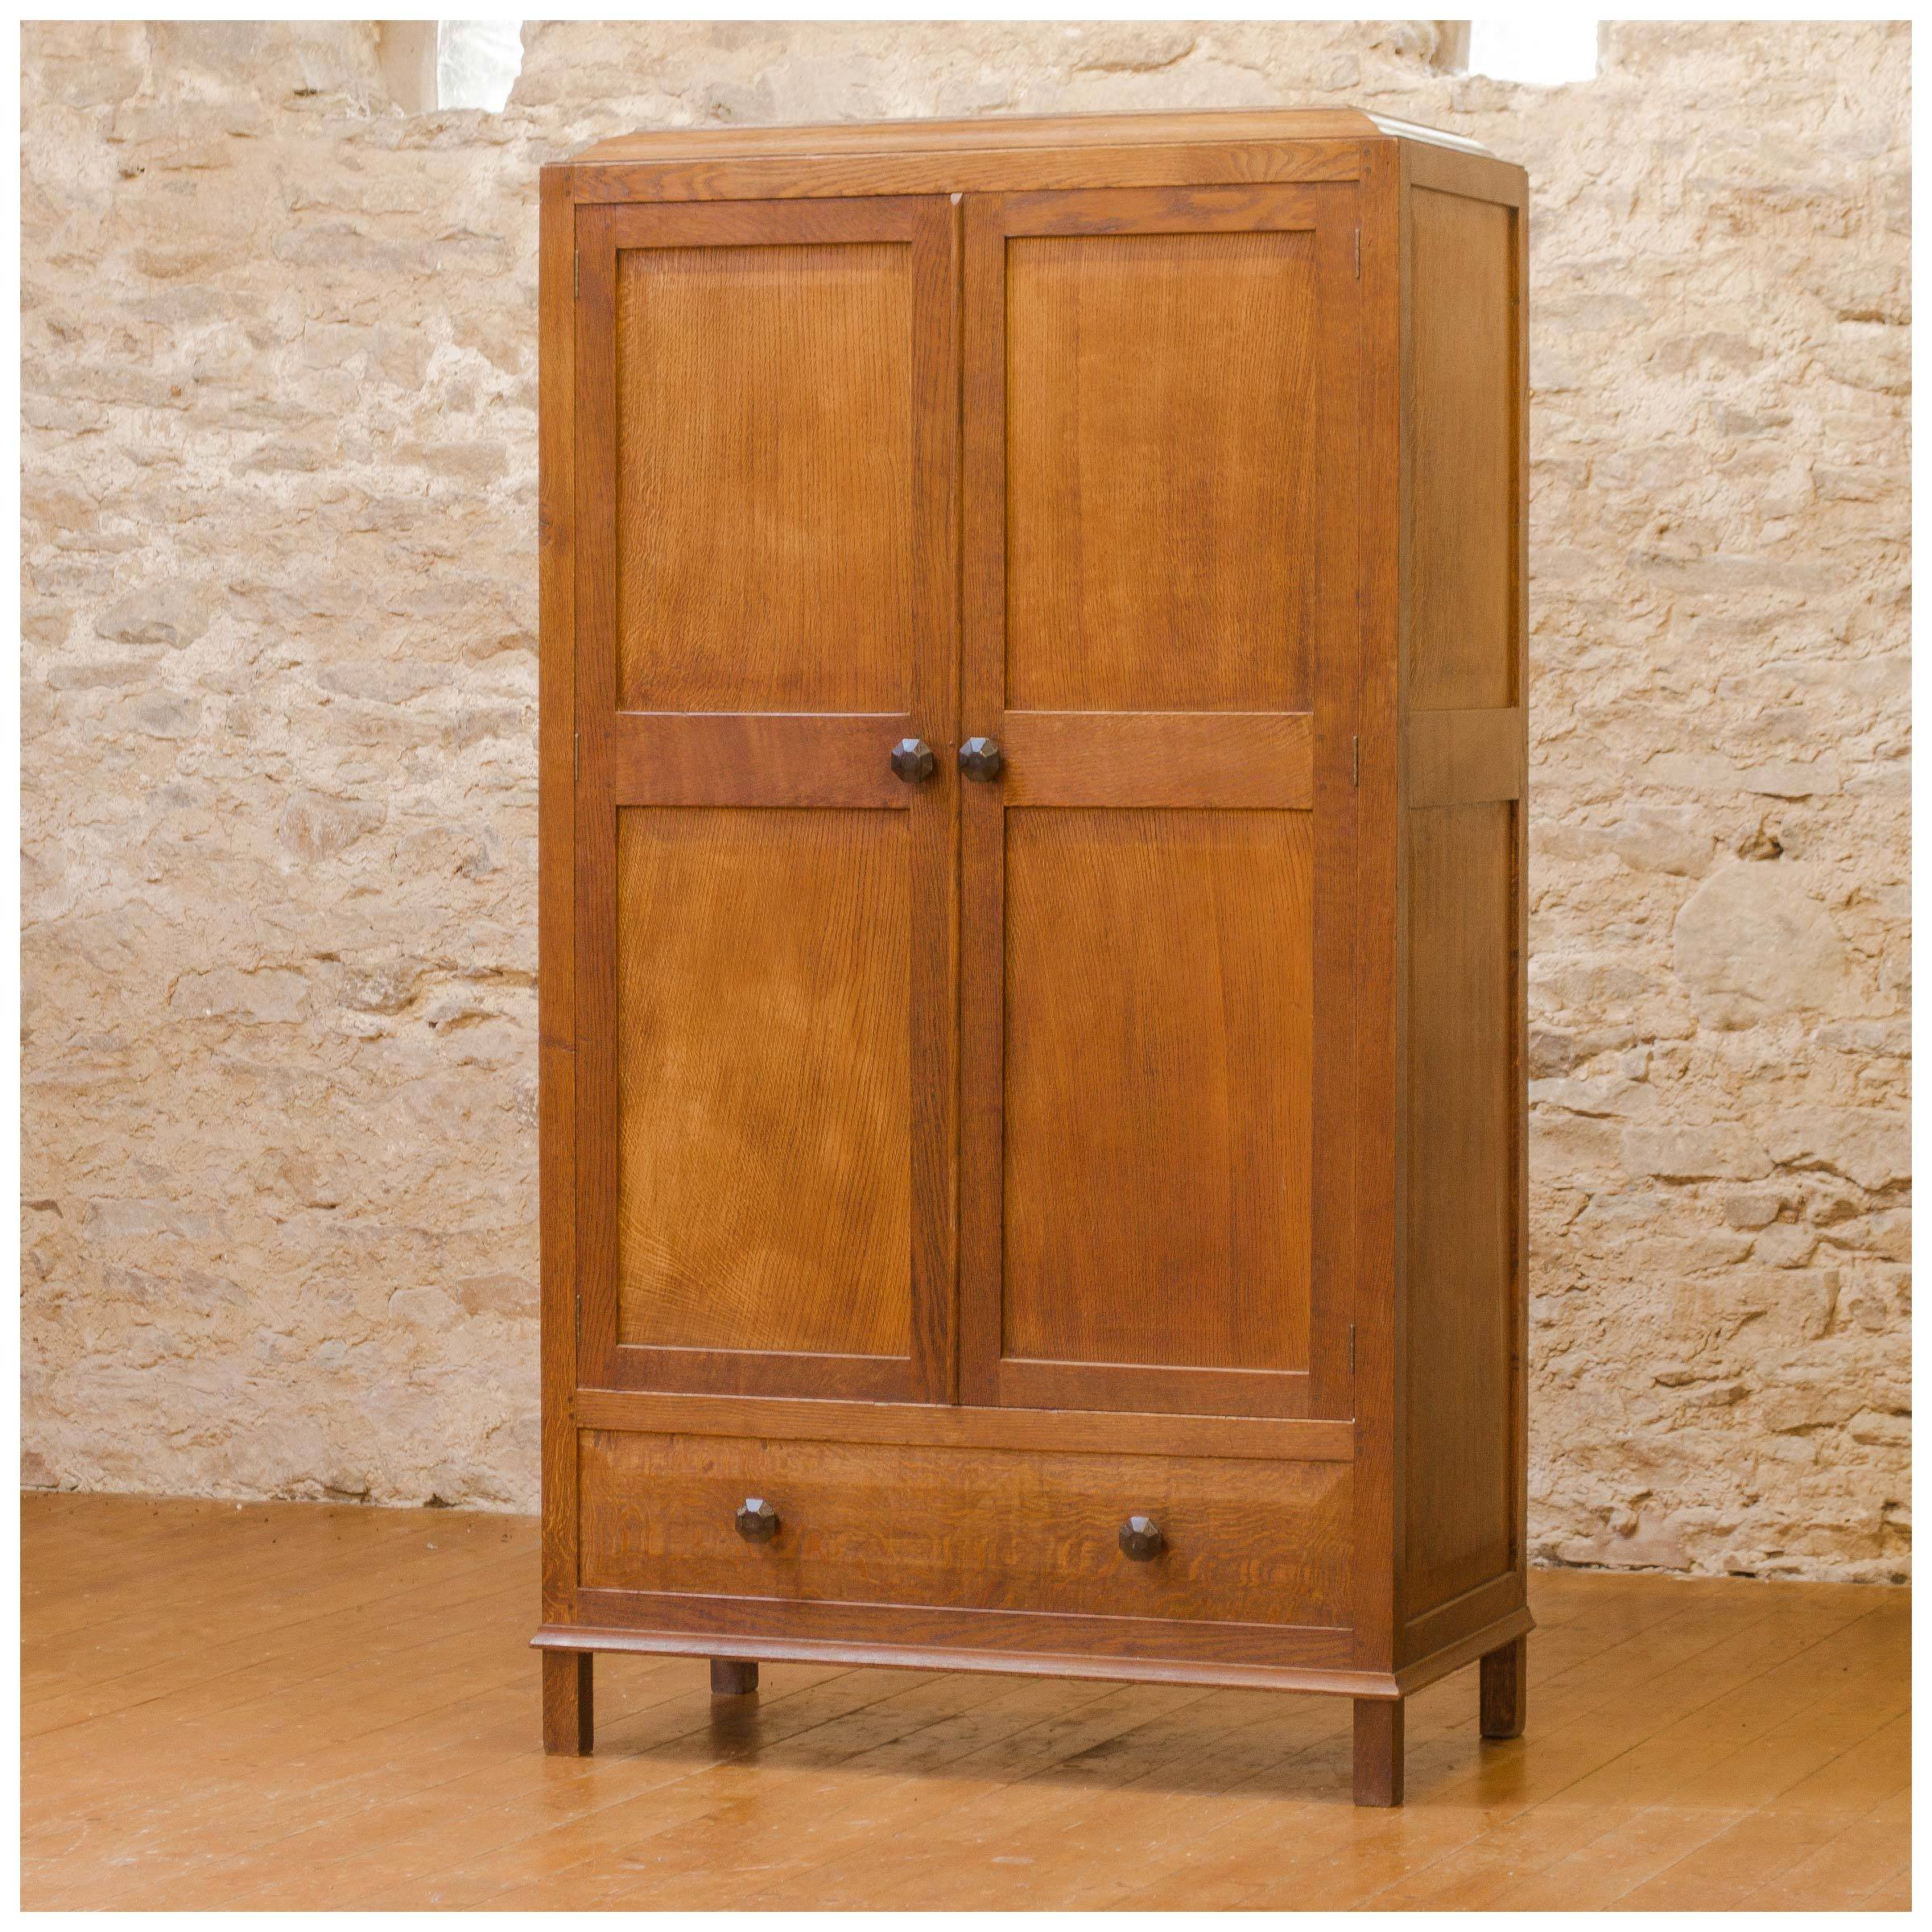 early-arts-crafts-stow-oak-double-wardrobe-no-447-by-gordon-russell-b0020124a.jpg